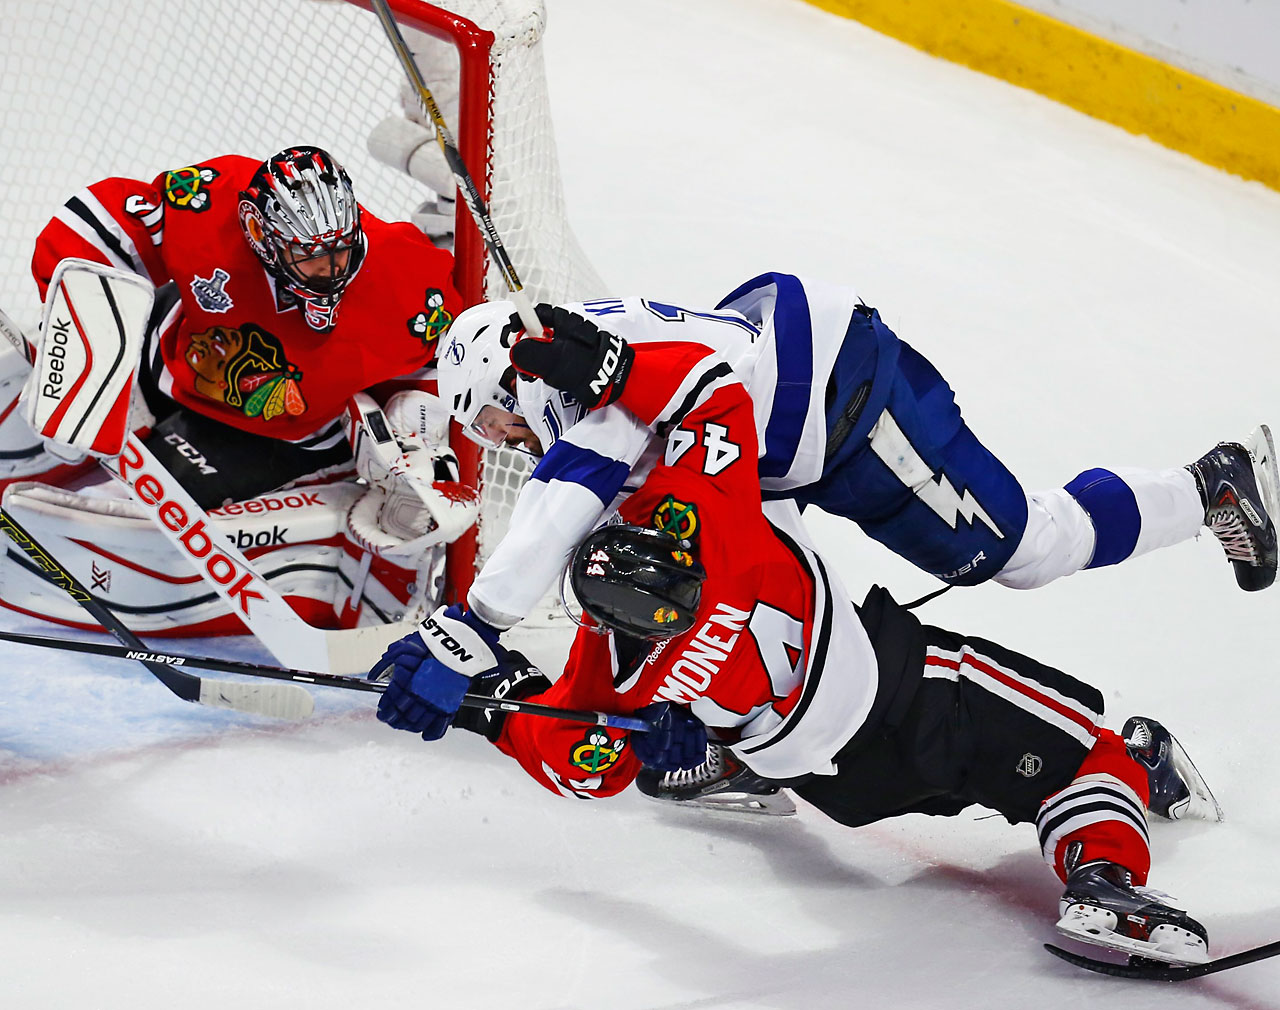 Kimmo Timonen of the Blackhawks missed the first three games of this series but got Alex Killorn's attention on Wednesday.